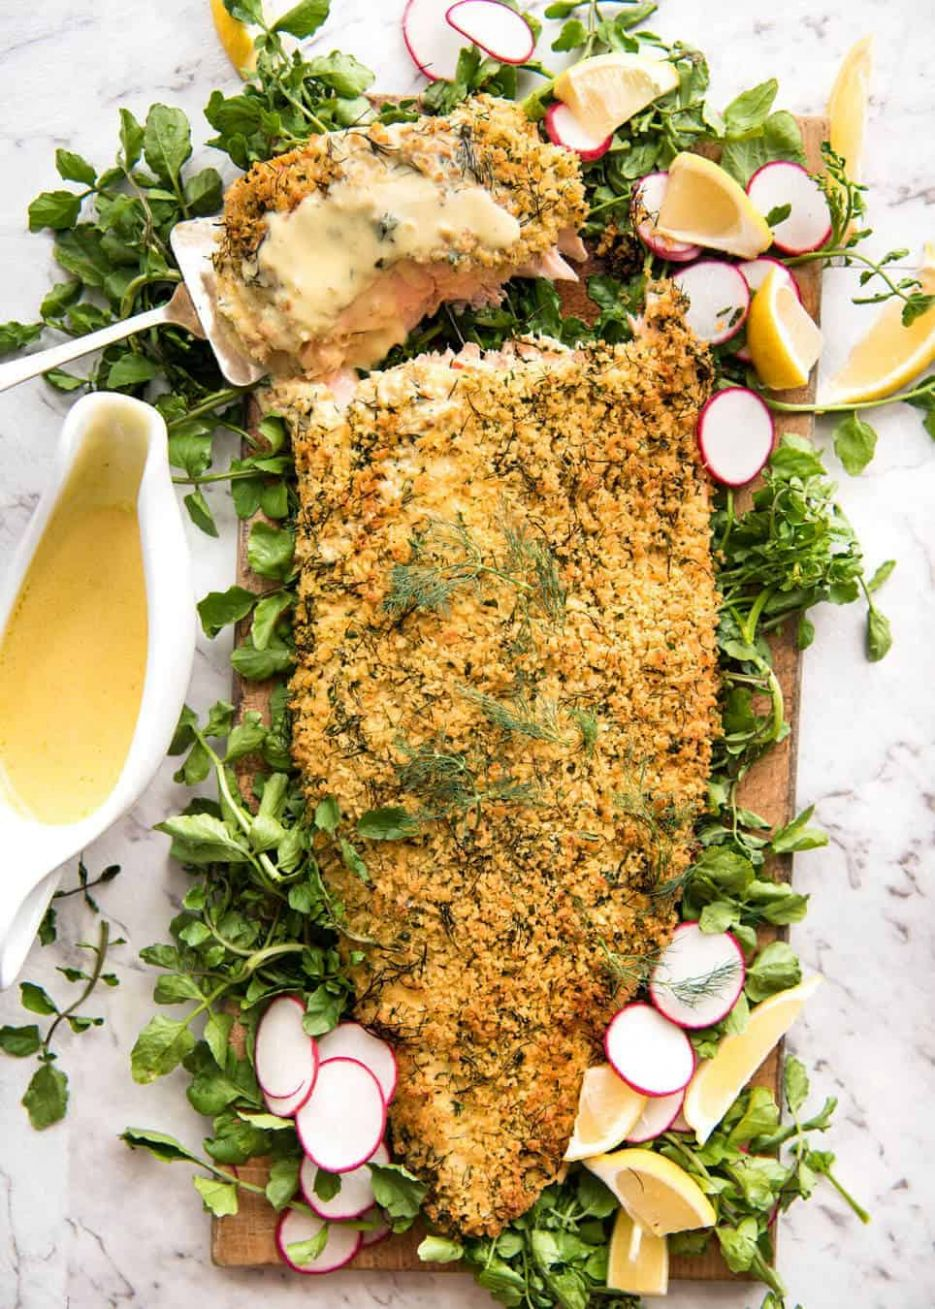 Baked Parmesan Crusted Salmon with Lemon Cream Sauce | RecipeTin Eats - Salmon Recipes For Xmas Dinner